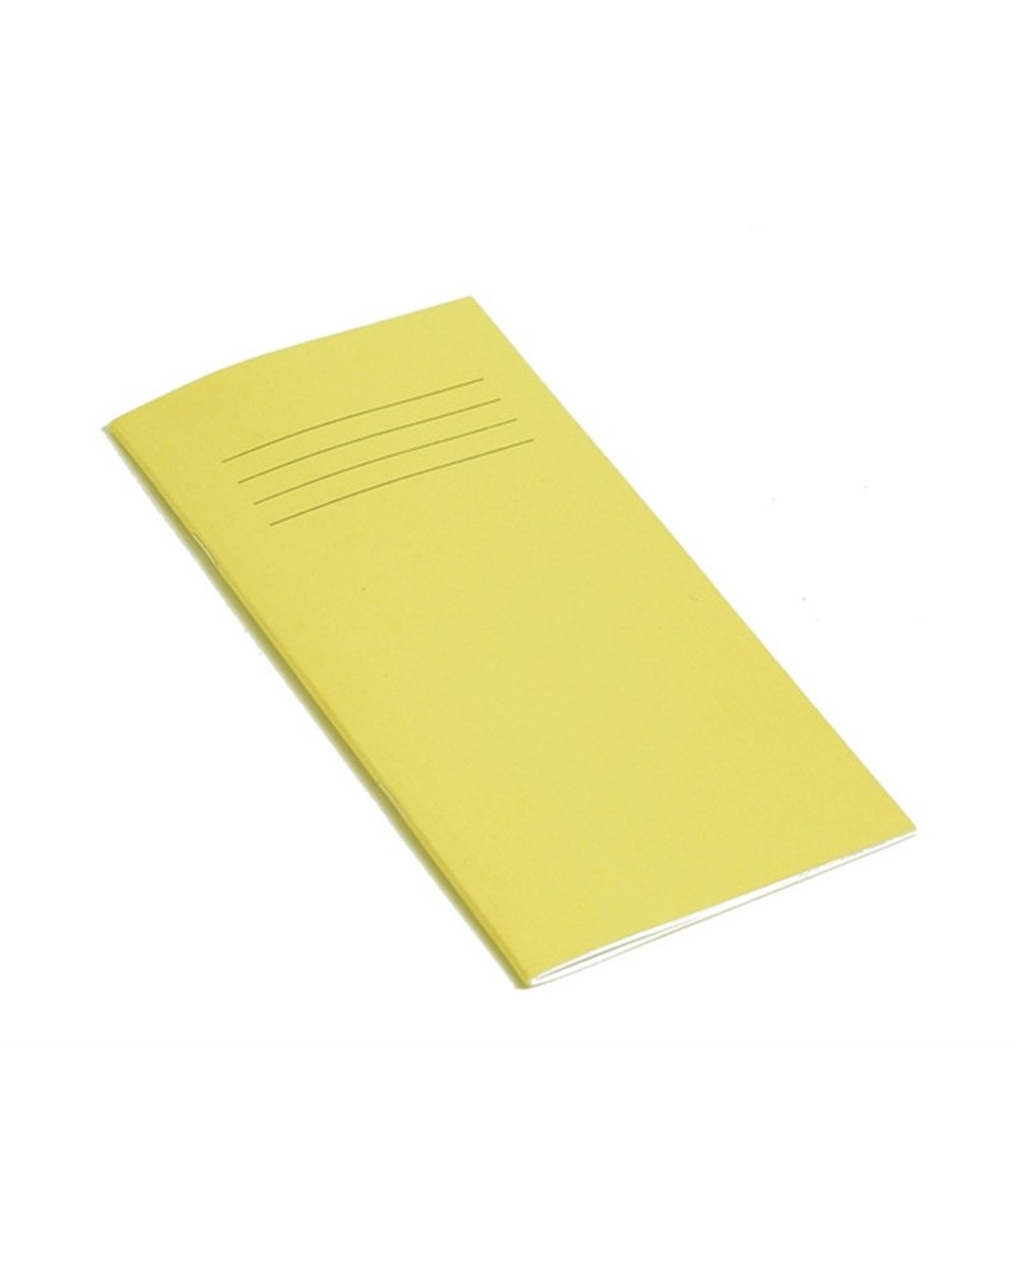 Exercise Book 8 x 4 (203 x 102mm) Yellow Cover 8mm Ruled 32 Pages